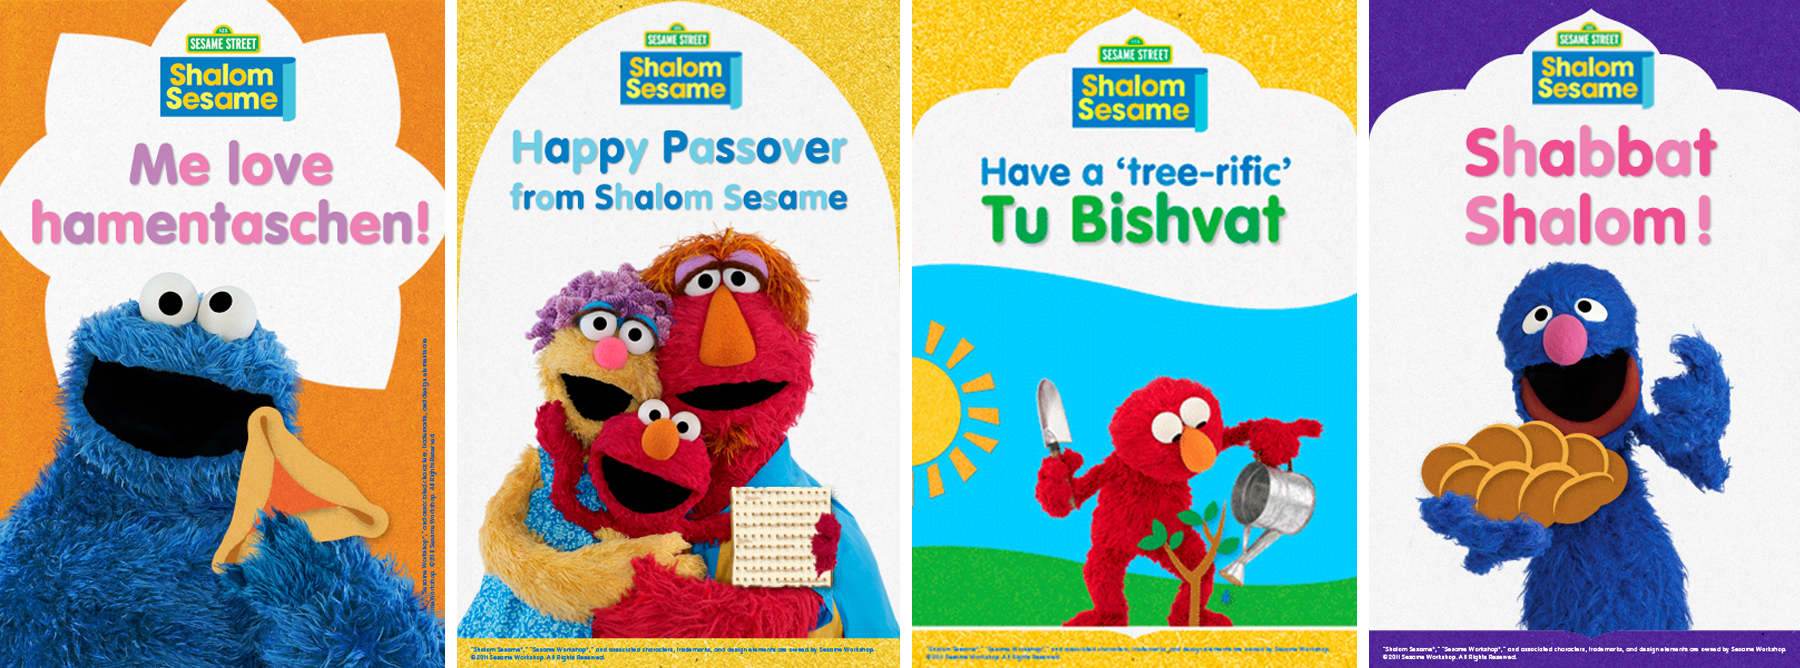 Shalom Sesame Facebook Marketing